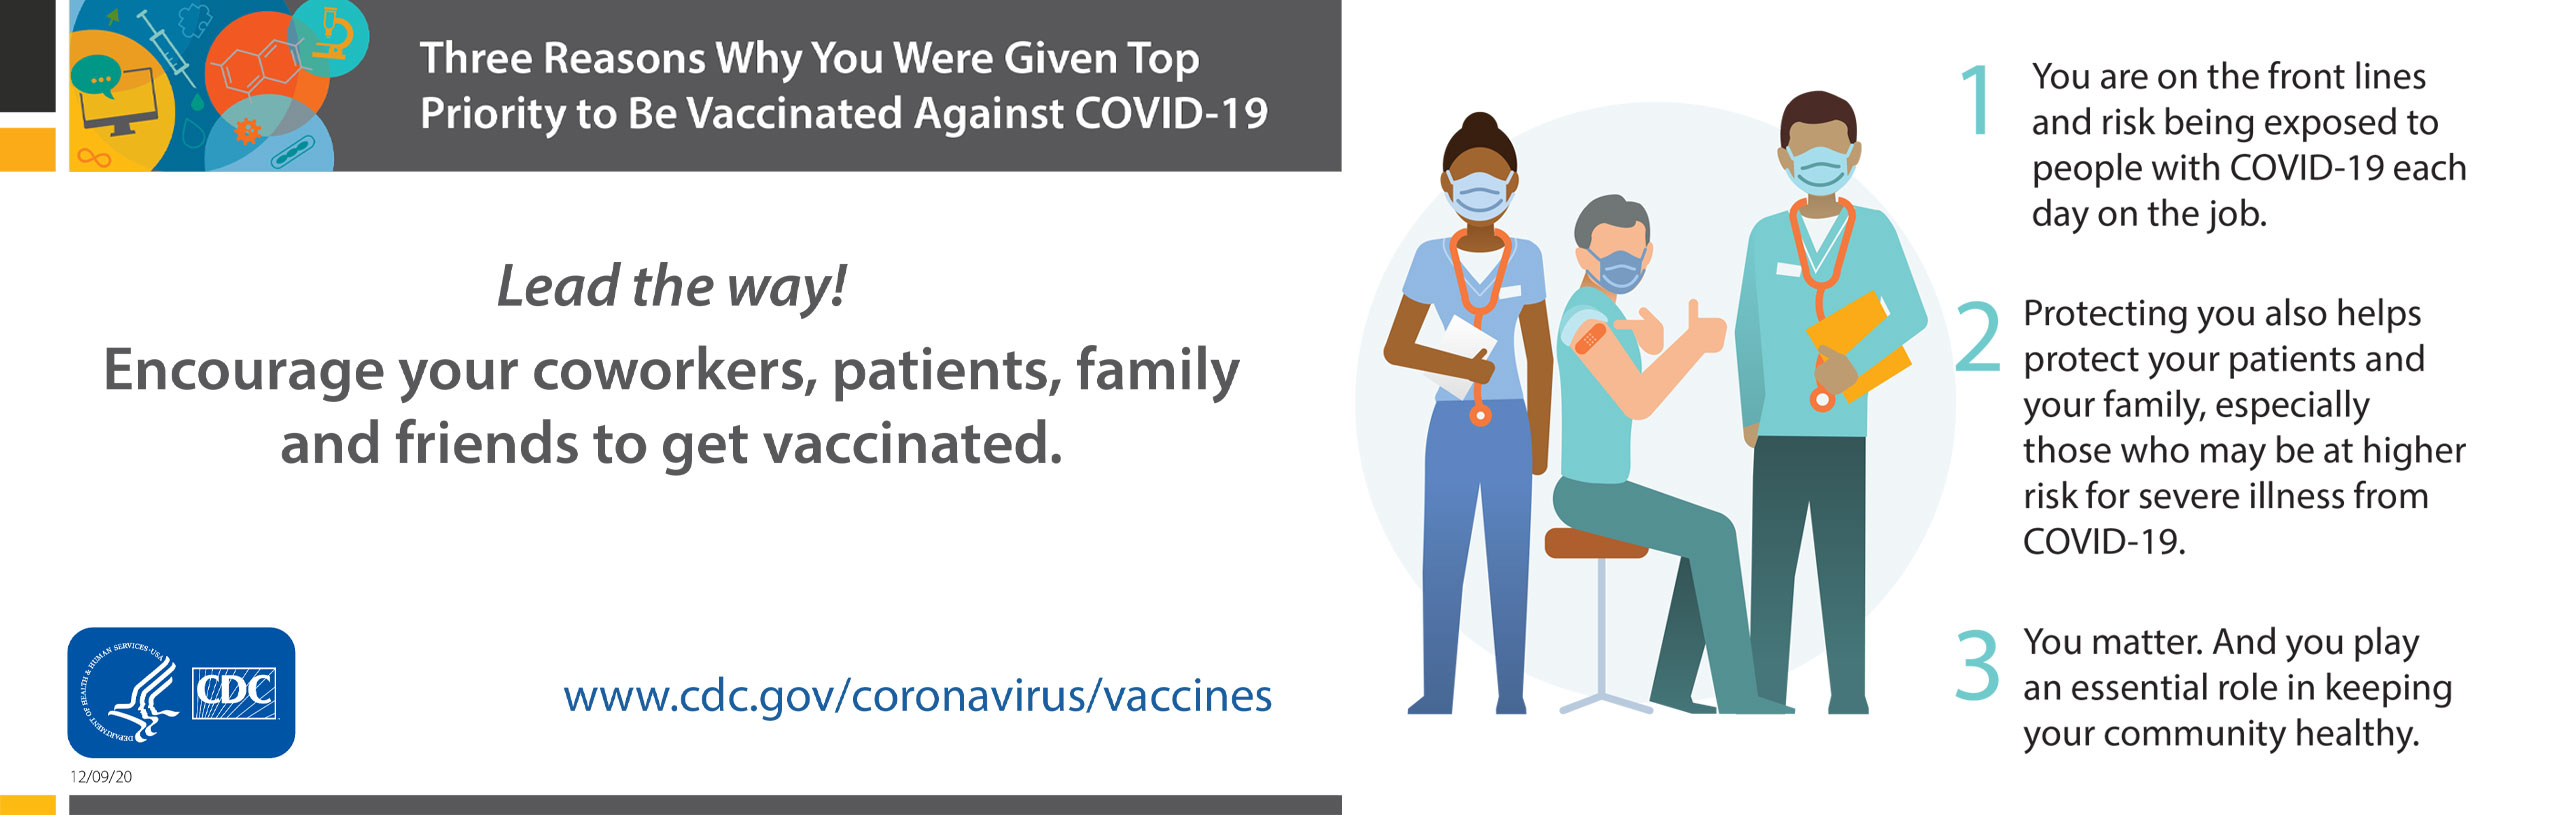 Three Reasons Why you were given top priority to be vaccinated against covid-19. Lead the way! Encourage your coworkers, patients, family and friends to get vaccinated.